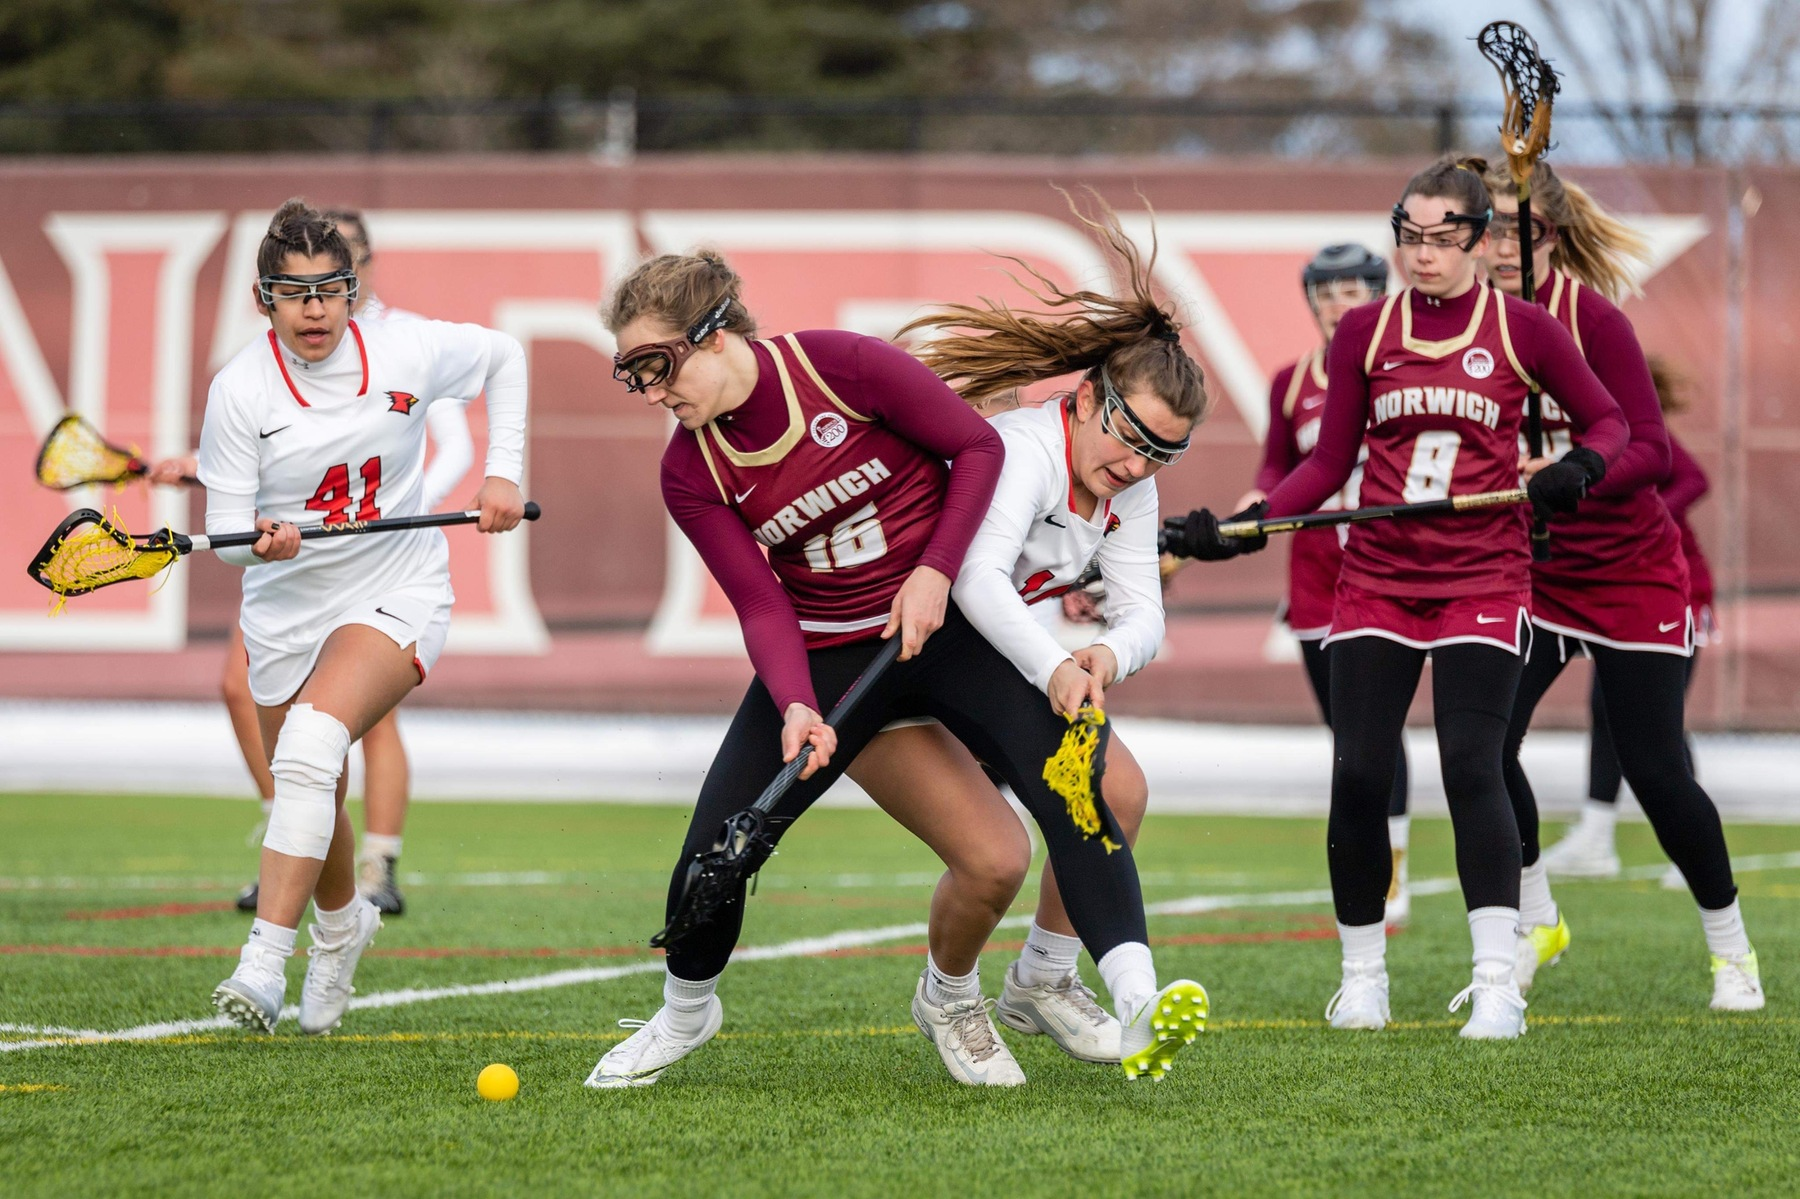 Women's Lacrosse: Chargers defeat Cadets by a 17-10 final score